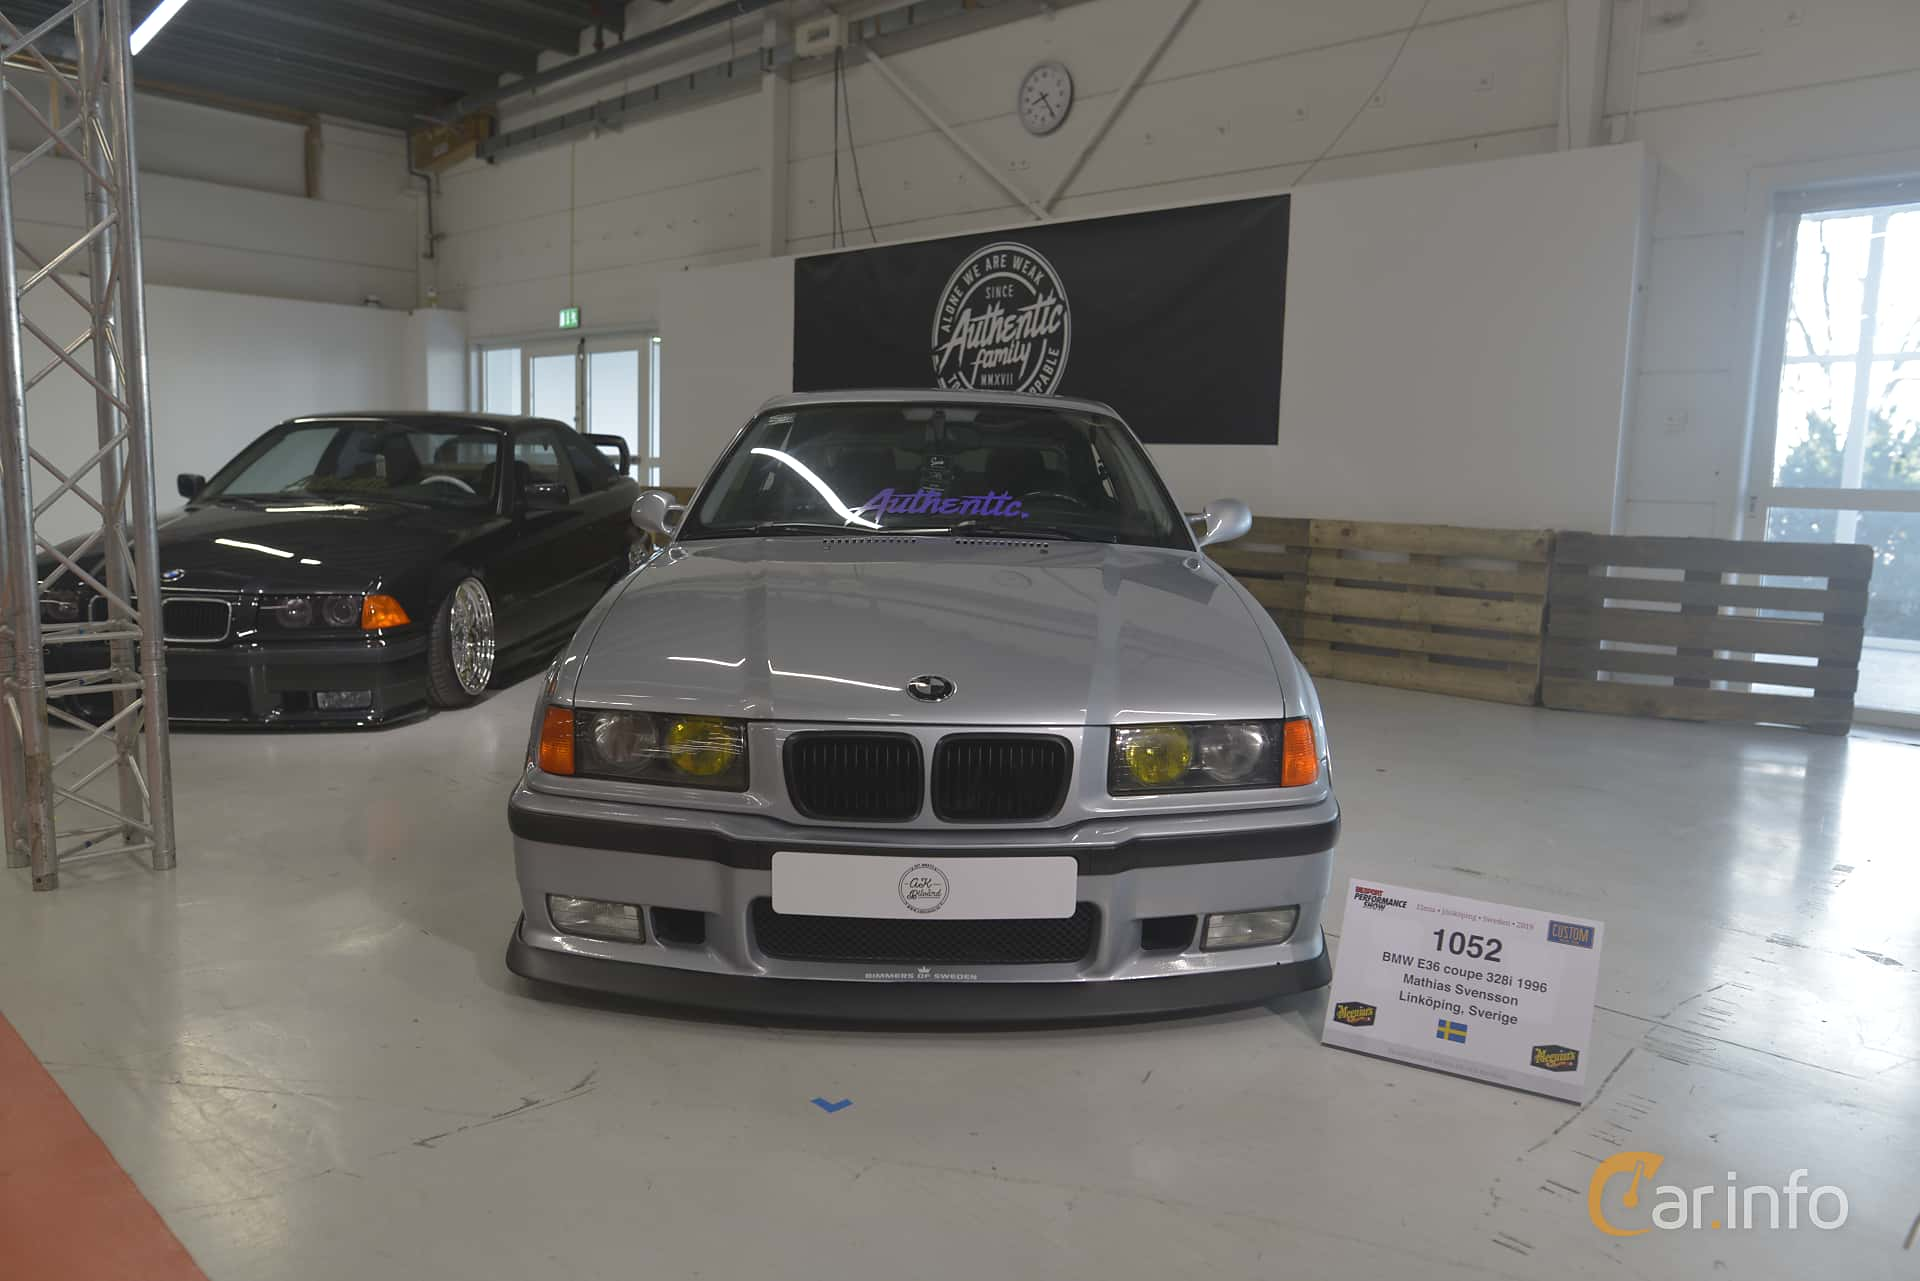 BMW 328i Coupé  193hp, 1996 at Bilsport Performance & Custom Motor Show 2019